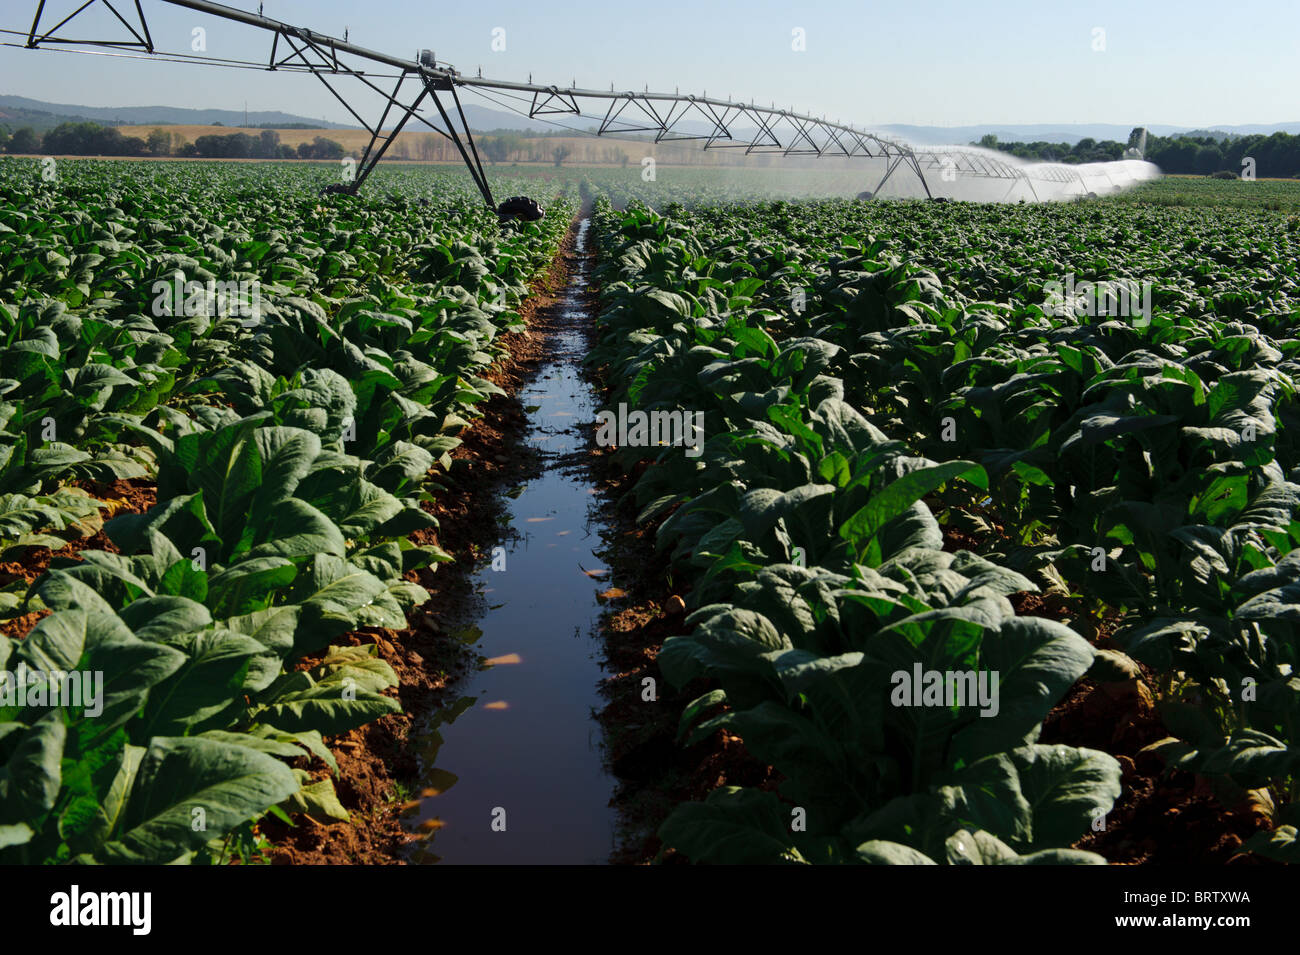 Pivot irrigation system in a tobacco field - Stock Image